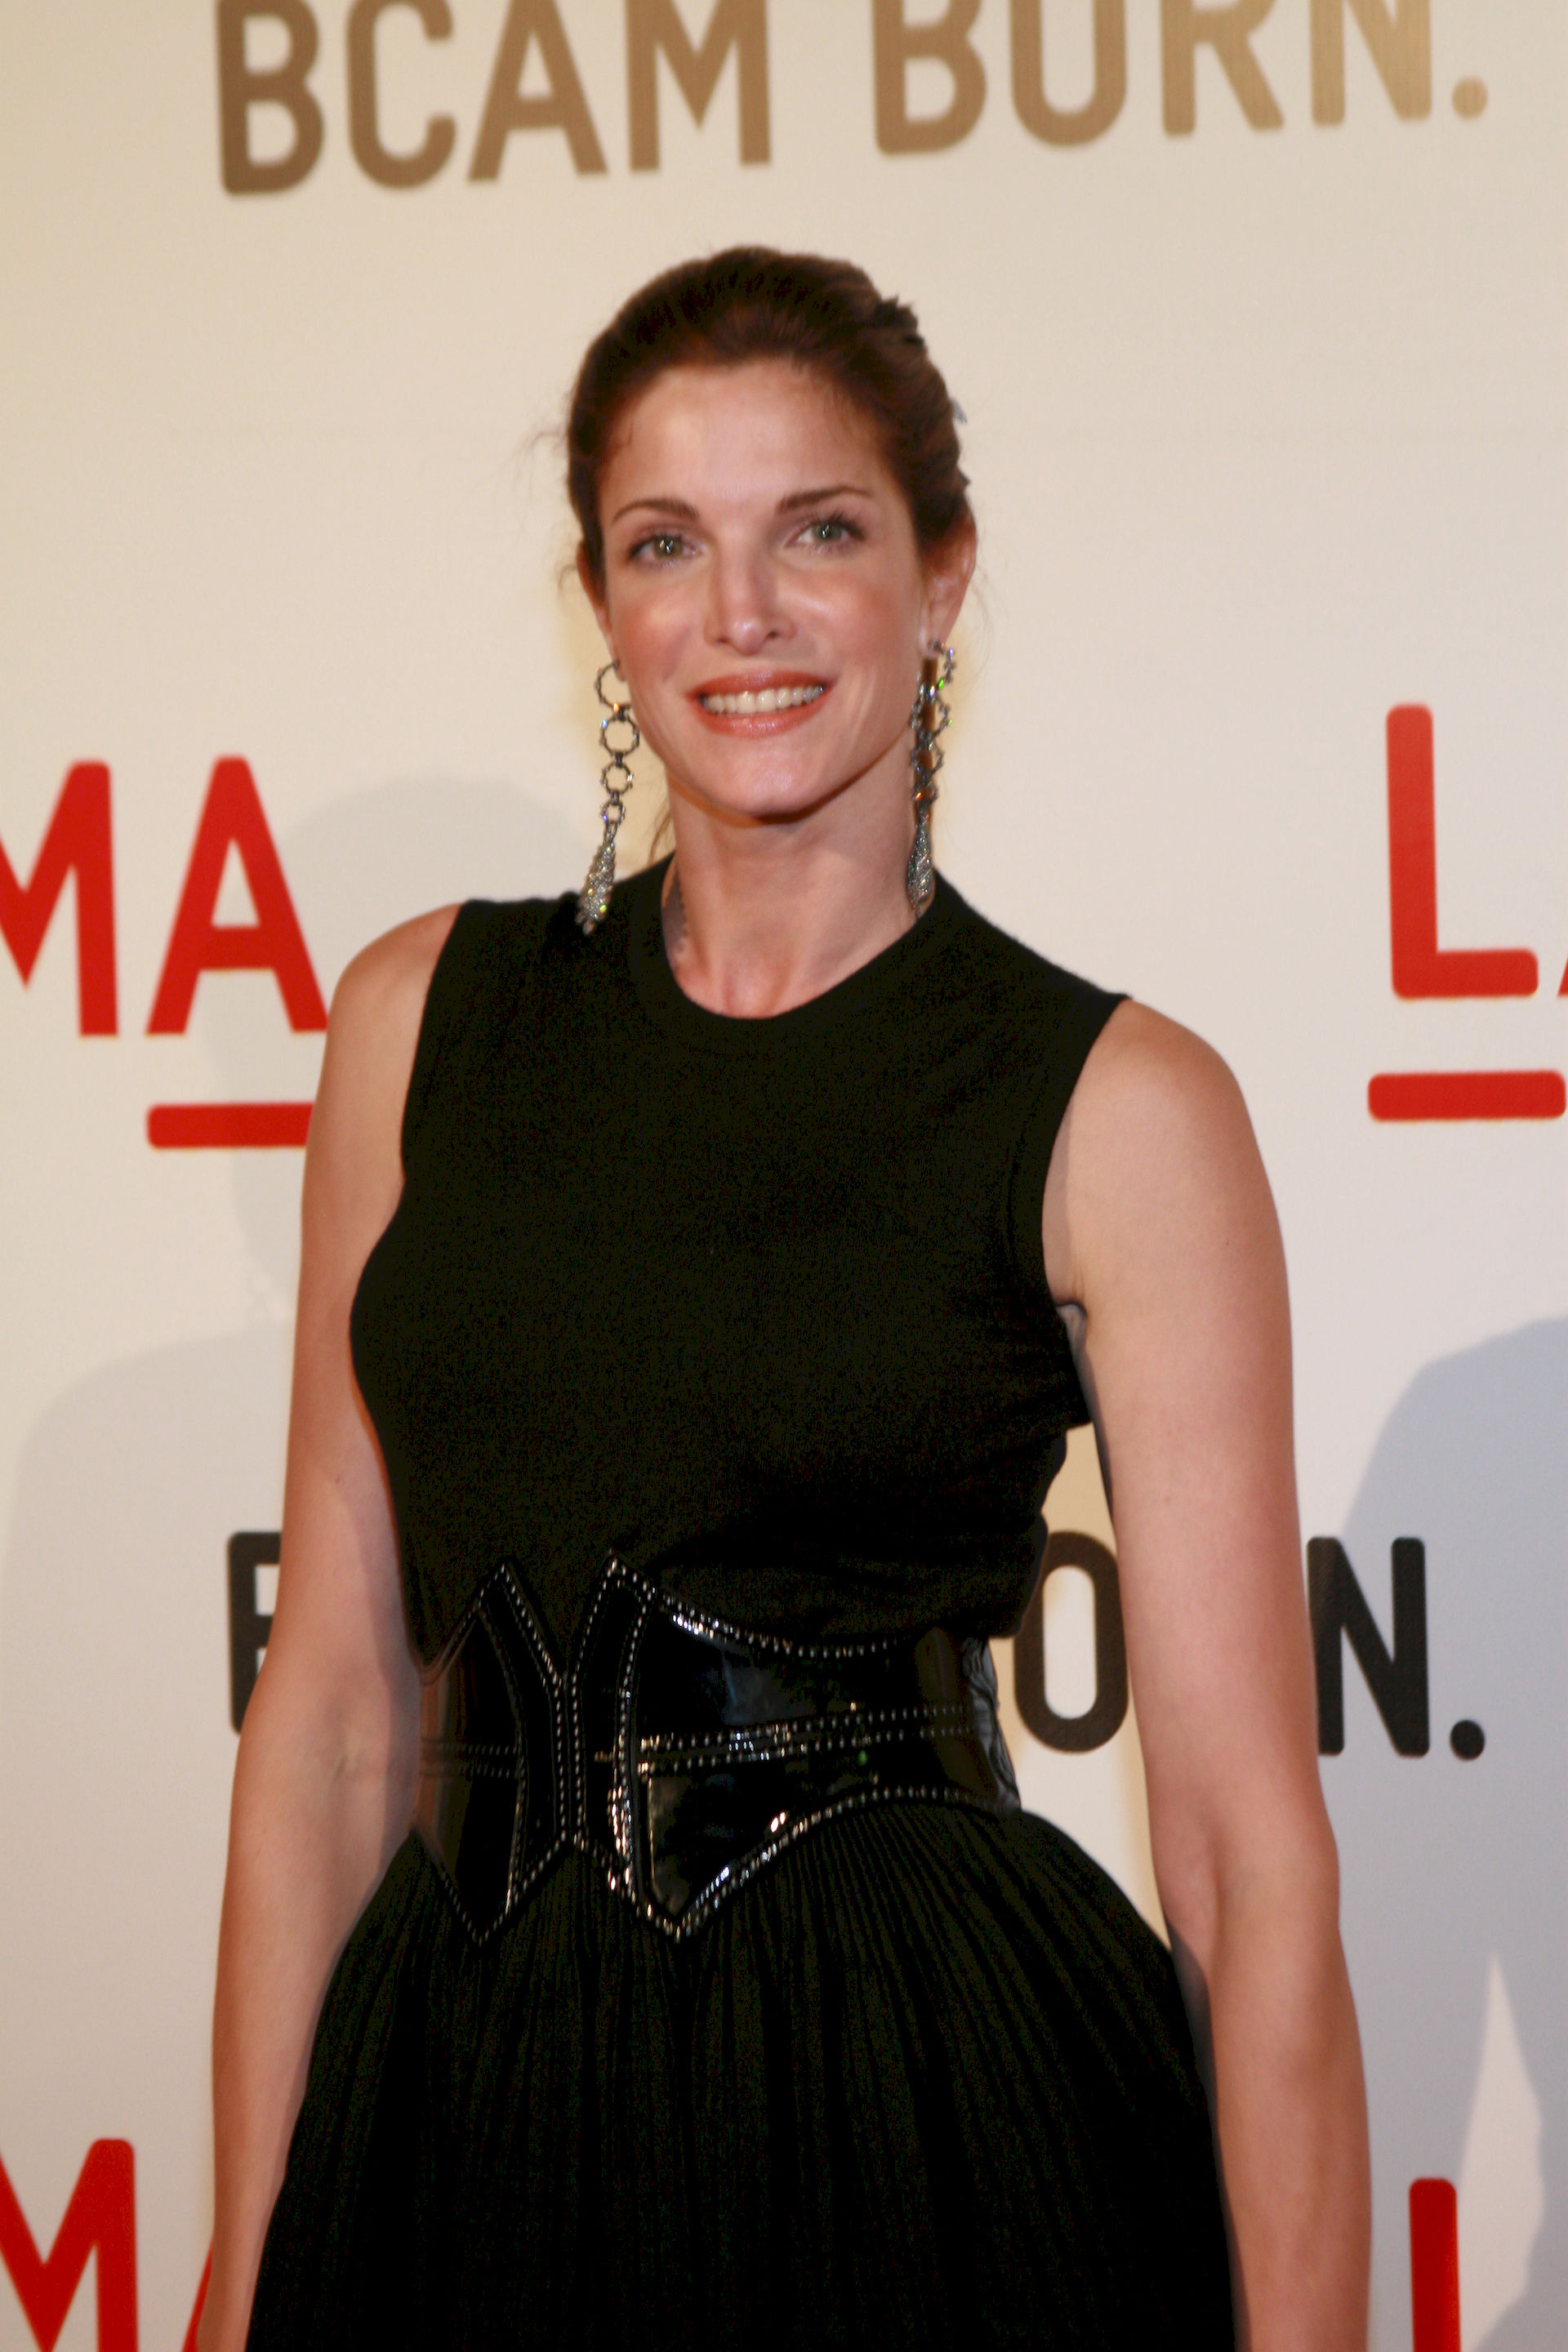 Photo of Stephanie Seymour: American model and actress